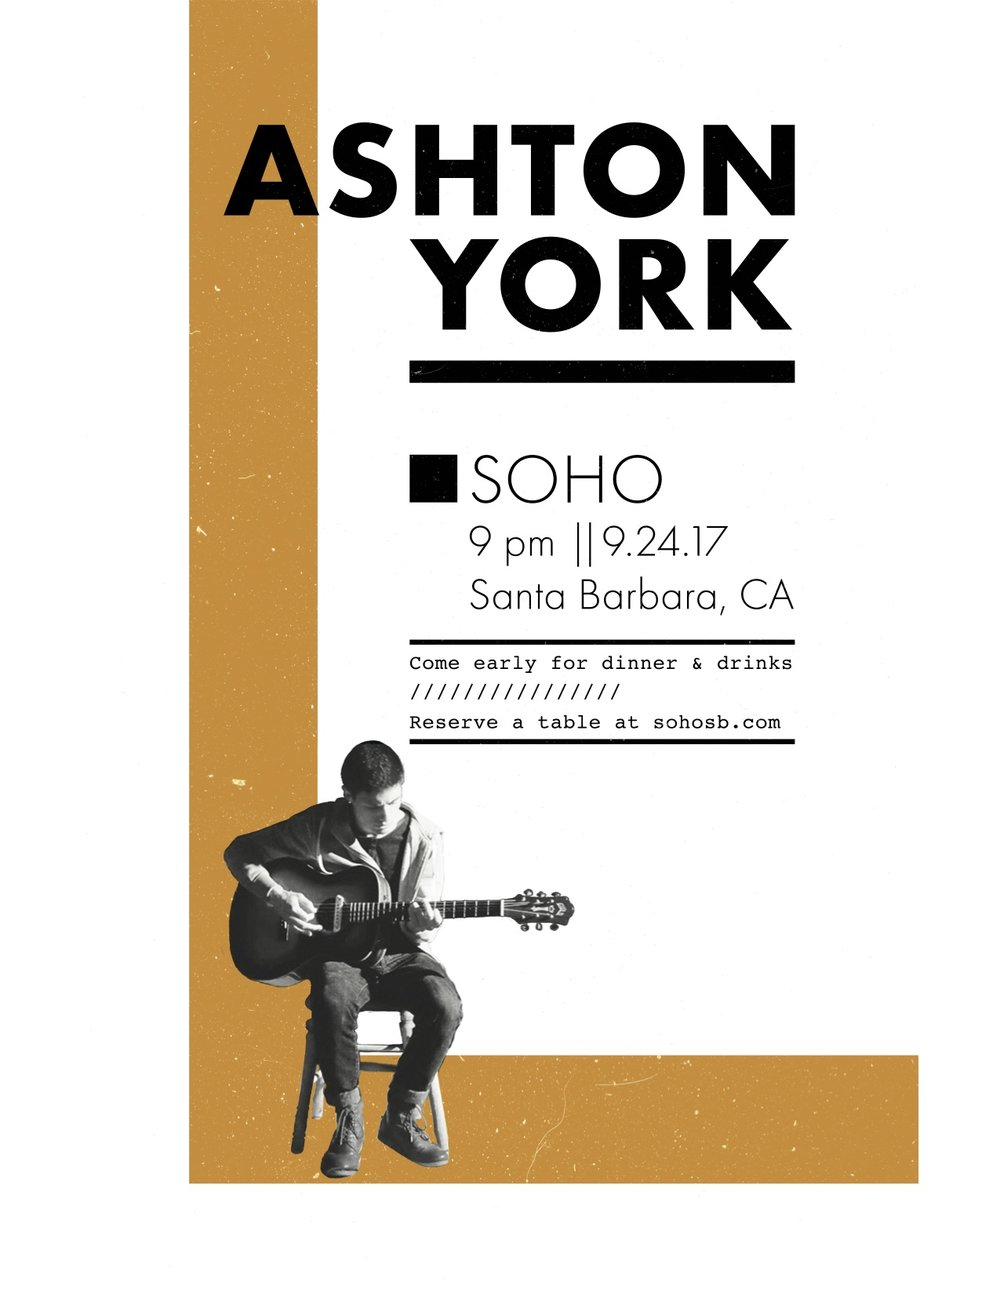 AshtonSOHOPoster11x17 photo.jpg